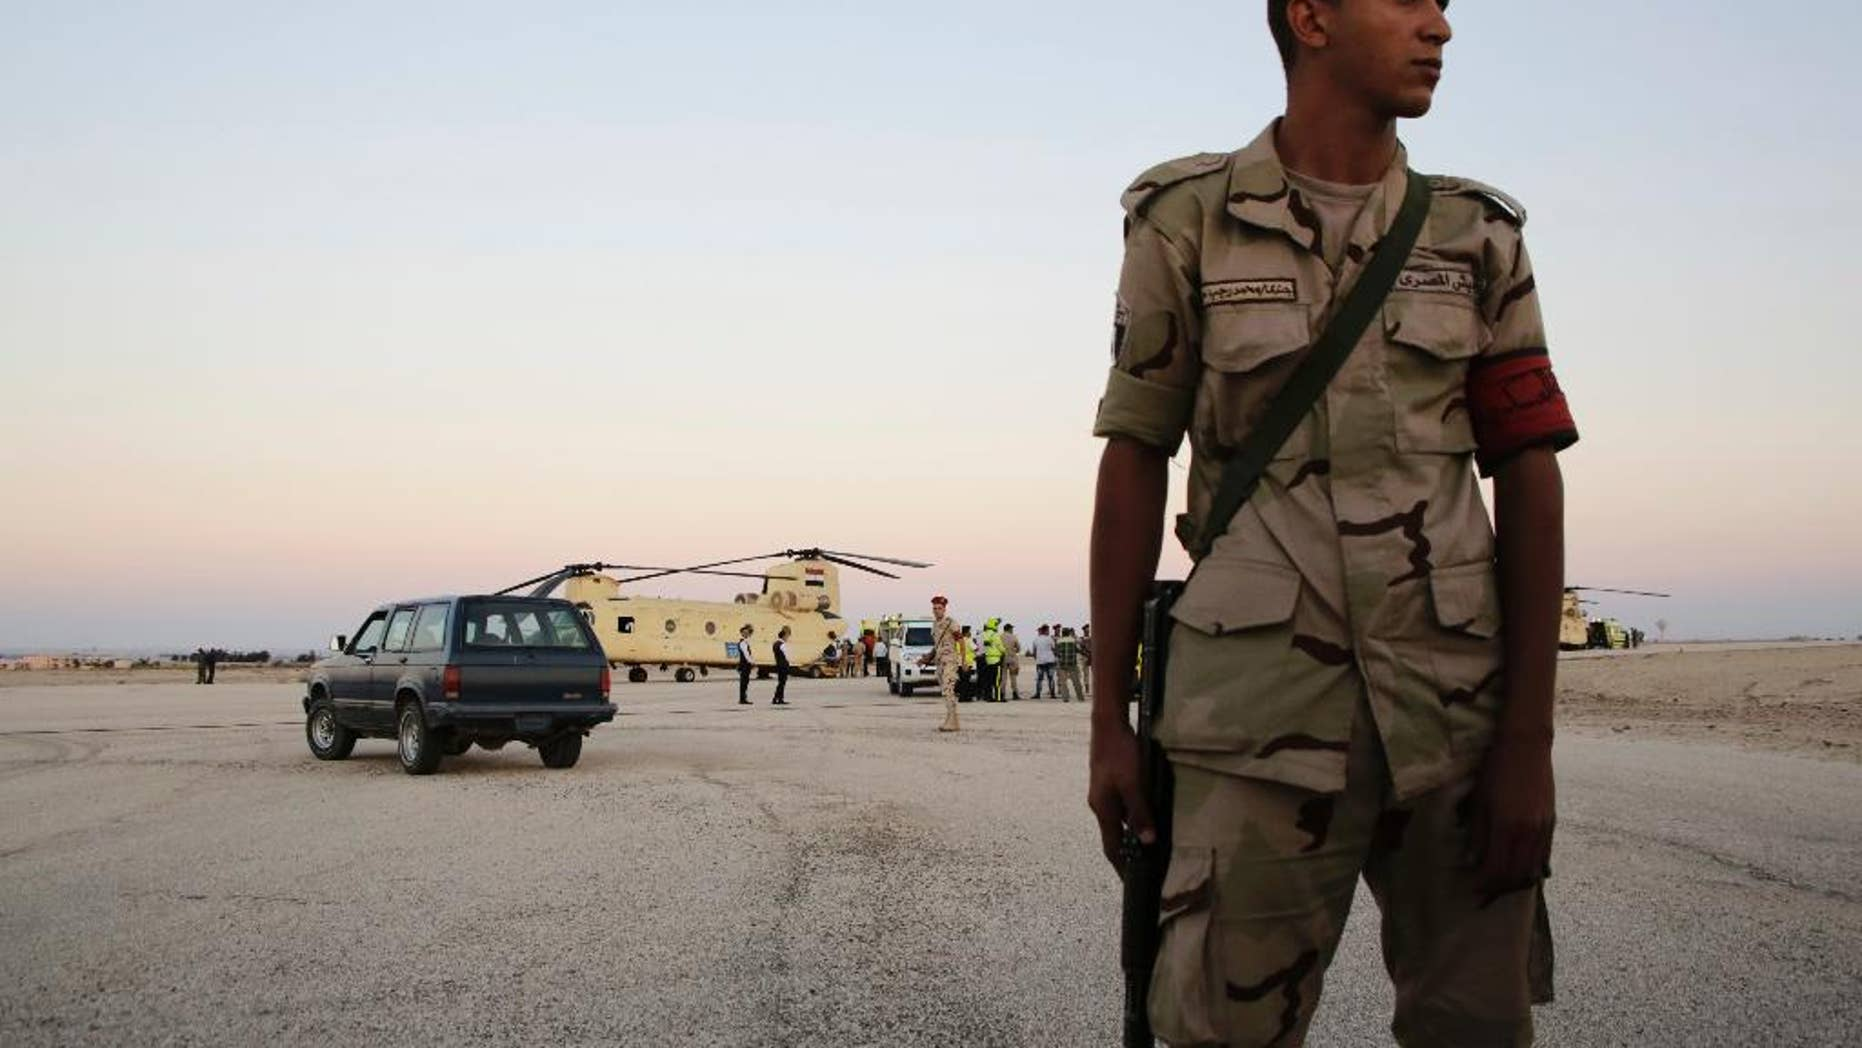 FILE - In this Saturday, Oct. 31, 2015 file photo, an Egyptian soldier stands guard as emergency workers unload bodies of victims from the crash of a Russian aircraft over the Sinai peninsula from a police helicopter to ambulances at Kabrit military airport, some 20 miles north of Suez, Egypt. Egyptians in the restive northern Sinai city of al-Arish are threatening civil disobedience to protest against what they claim to be the extrajudicial killing of six youths by security forces. (AP Photo/Amr Nabil, File)